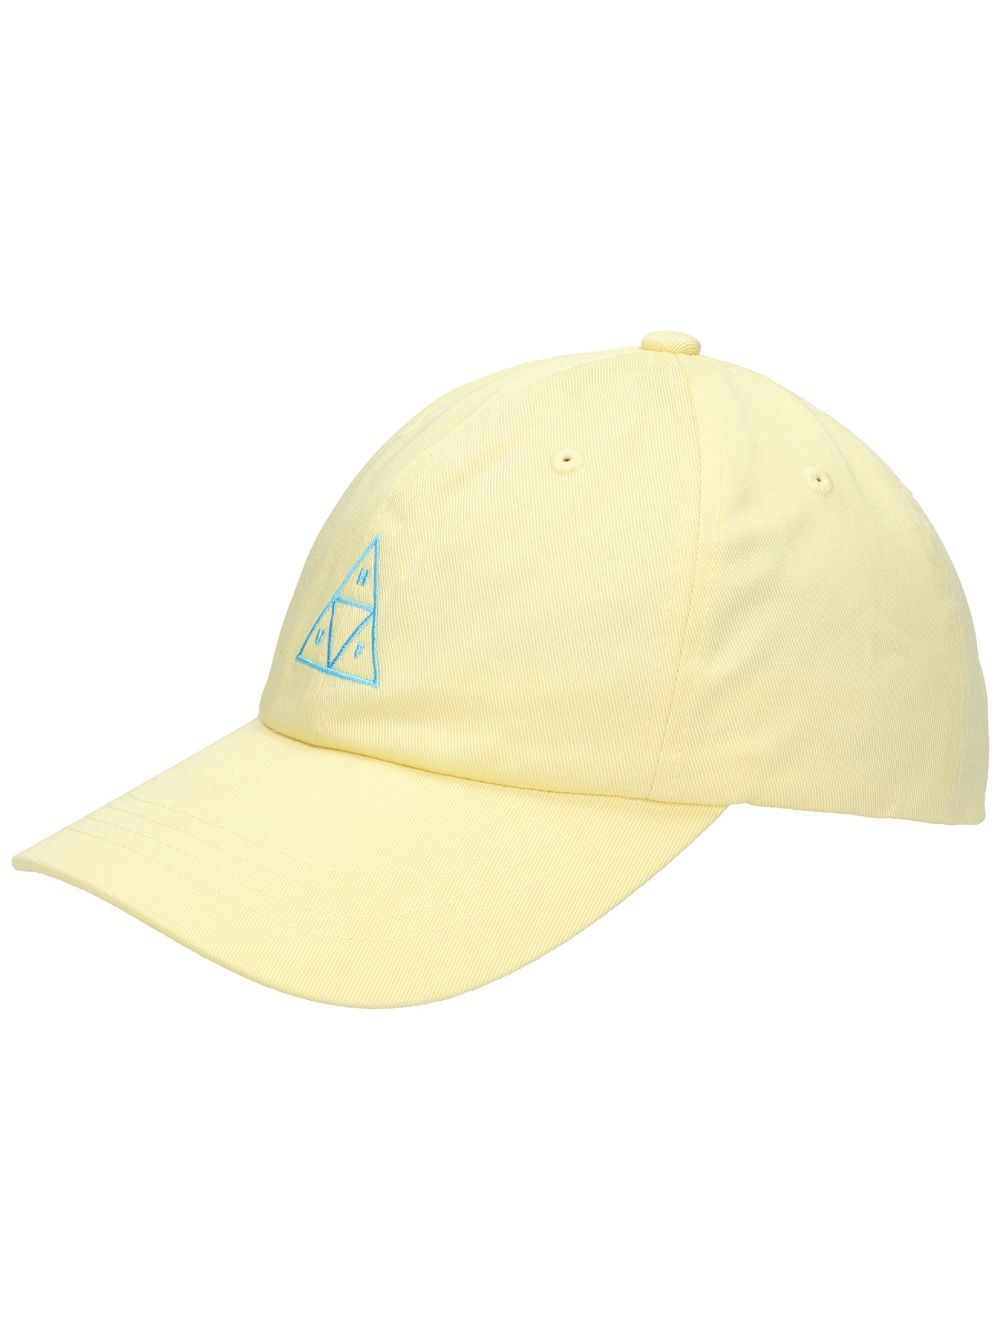 Triple Triangle Curved Visior 6 Panel Cap